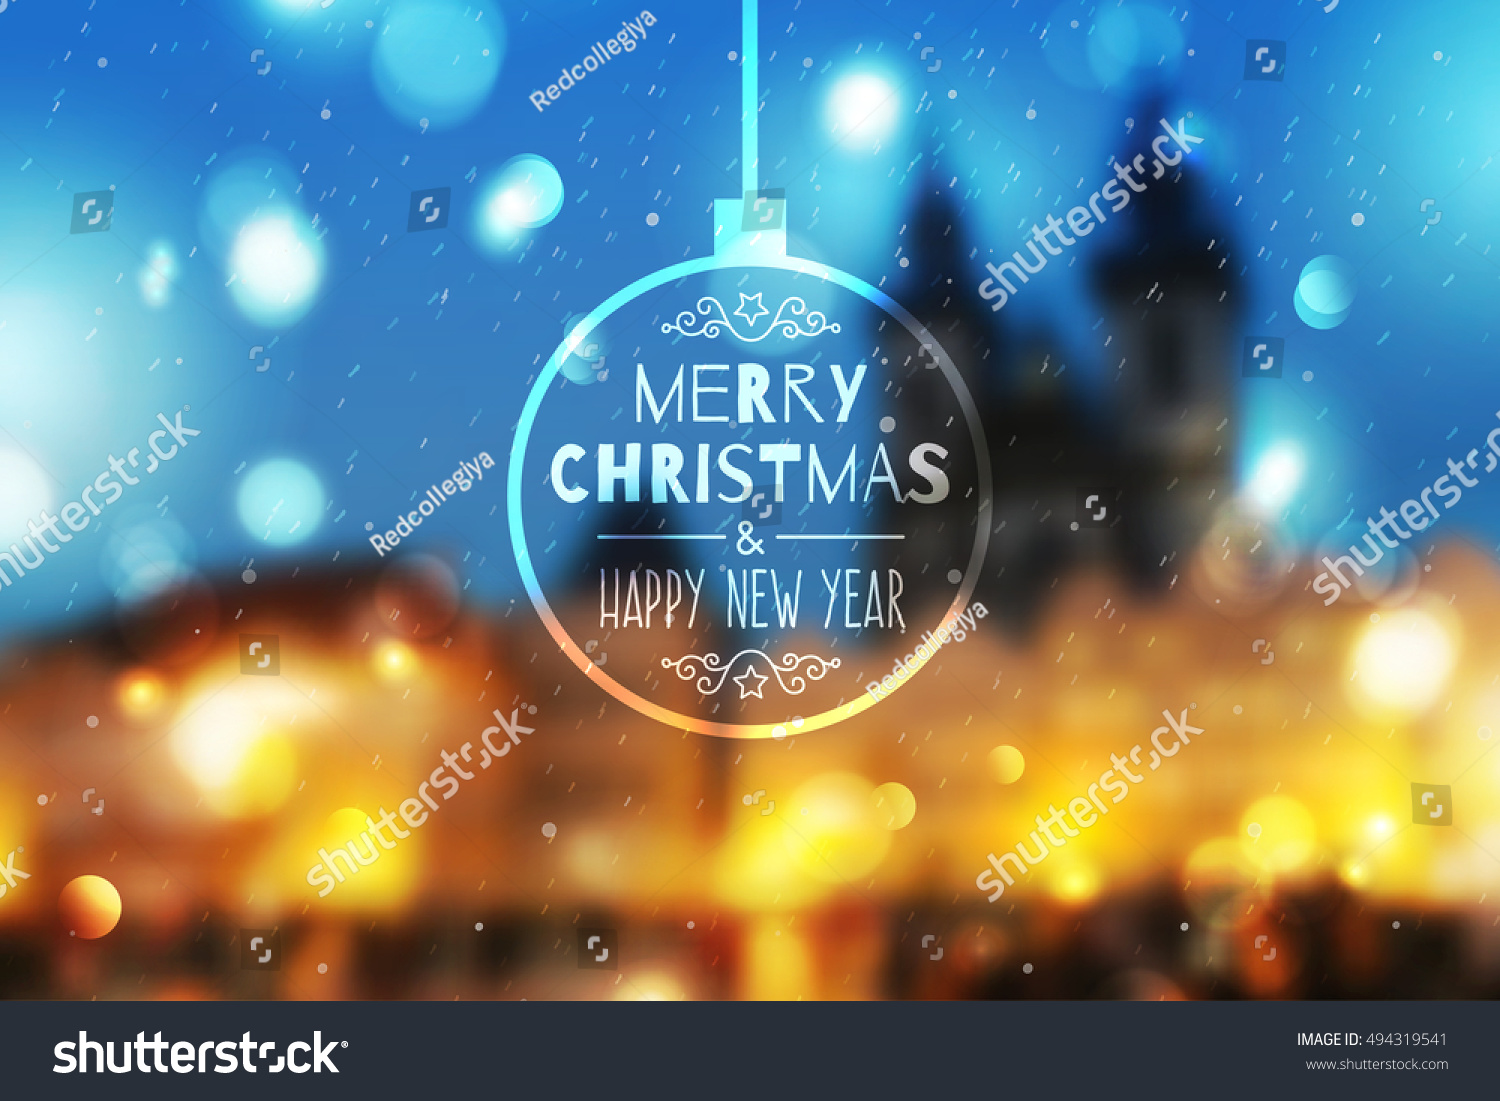 merry christmas and happy new year vector blurred background of night town prague view and